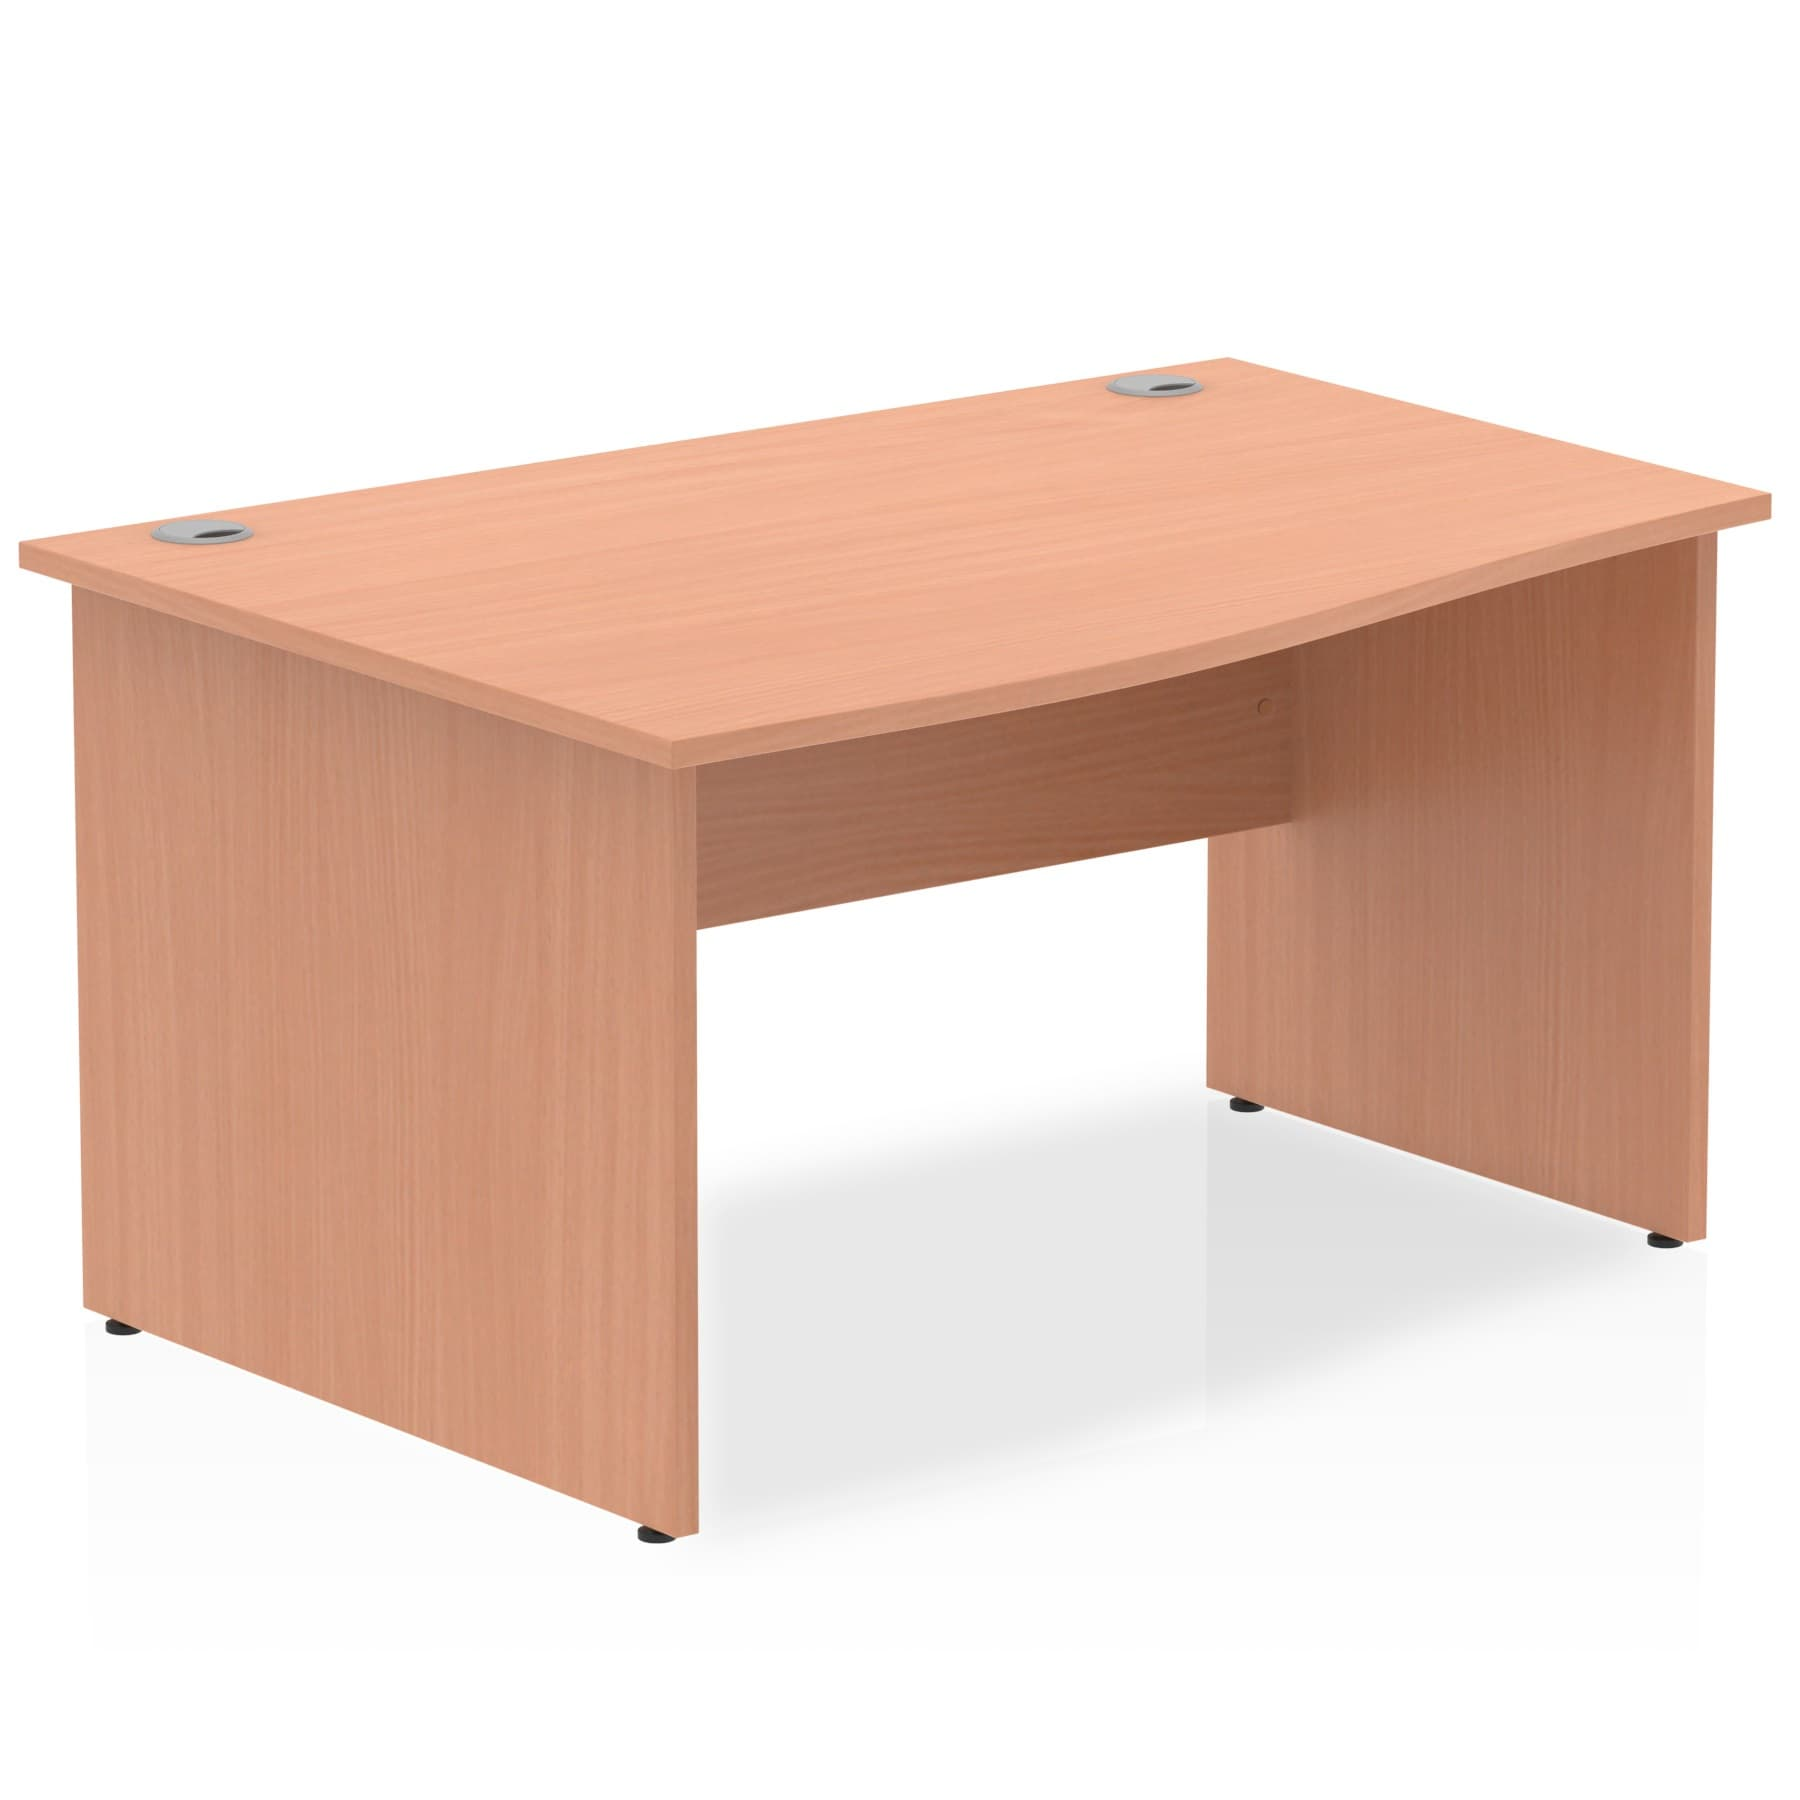 Impulse 1600 Left Hand Wave Desk